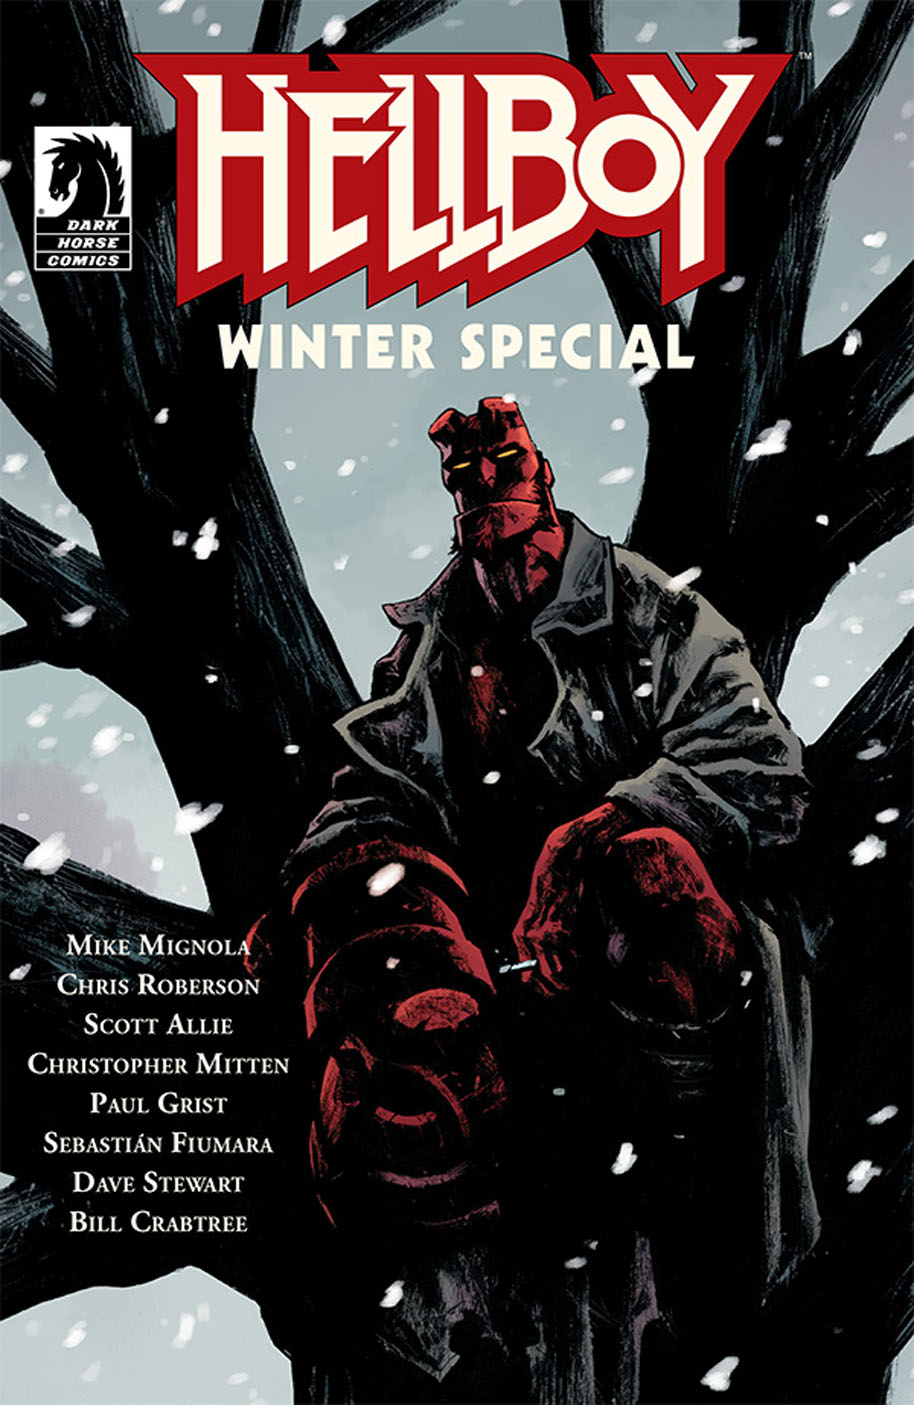 Hellboy Winter Special cover